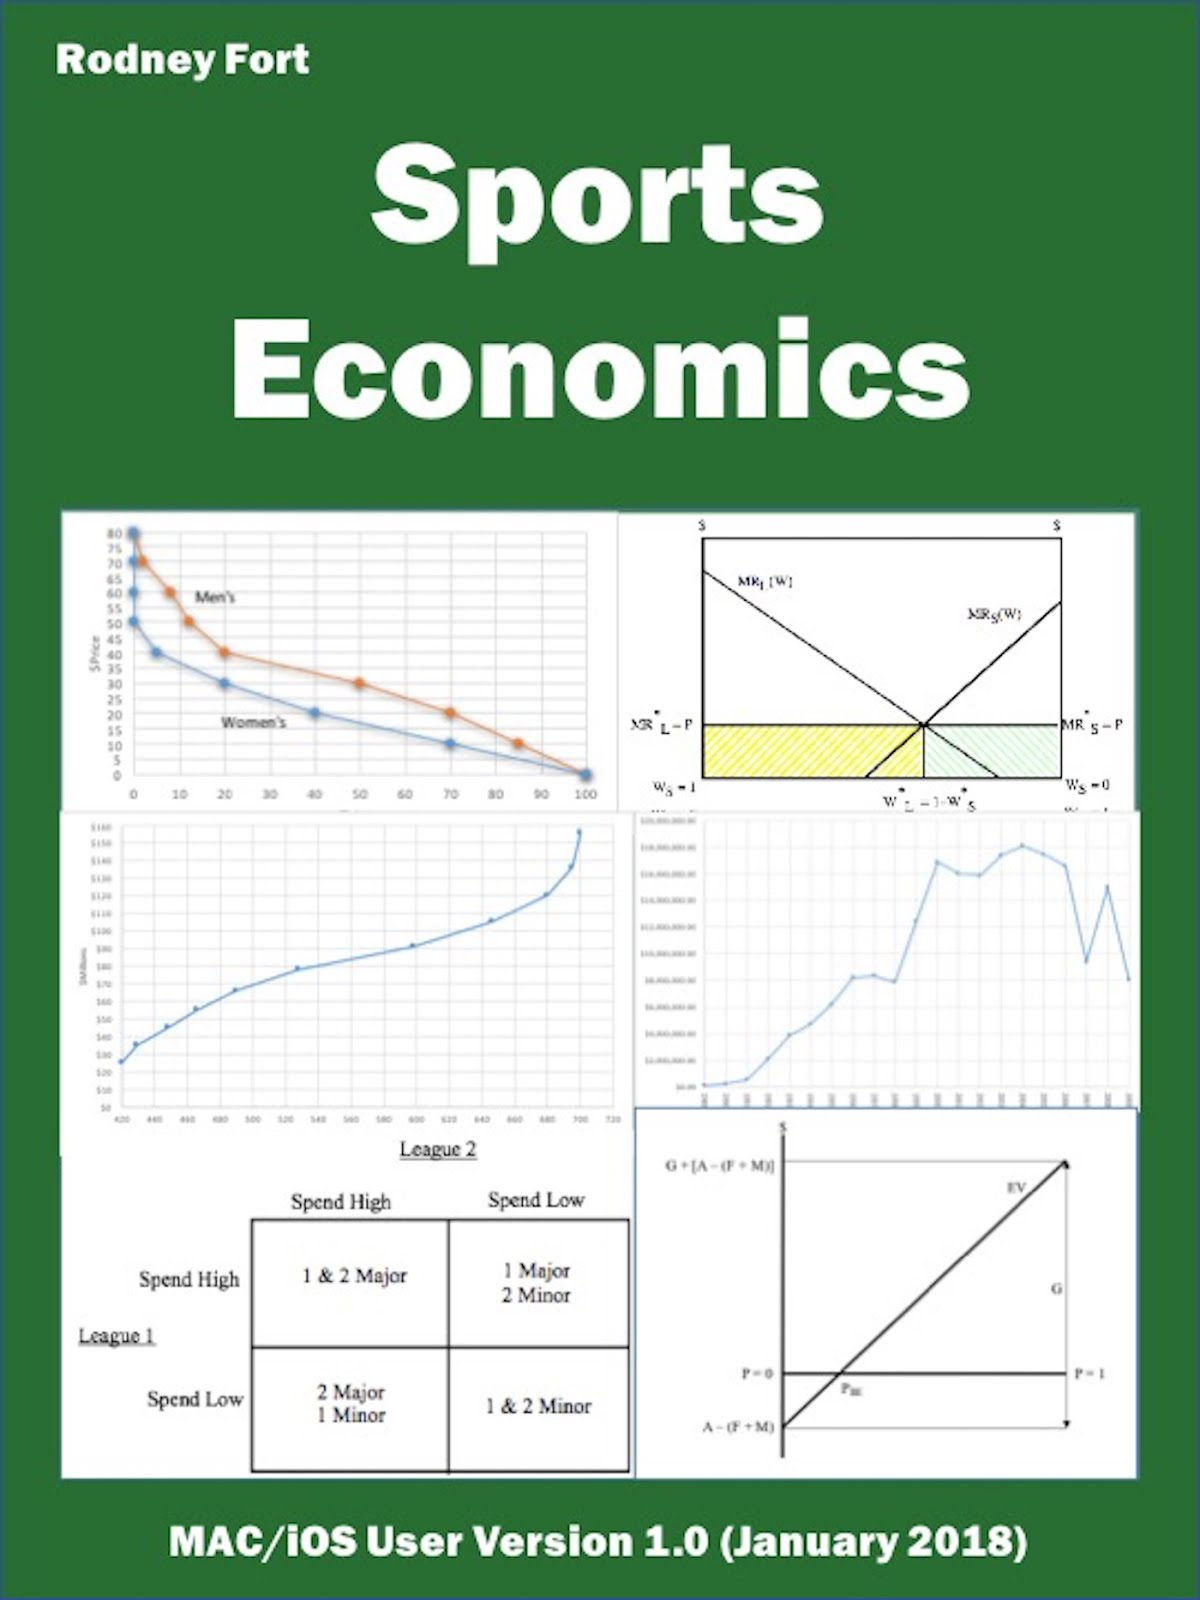 Sports Economics version 1.0